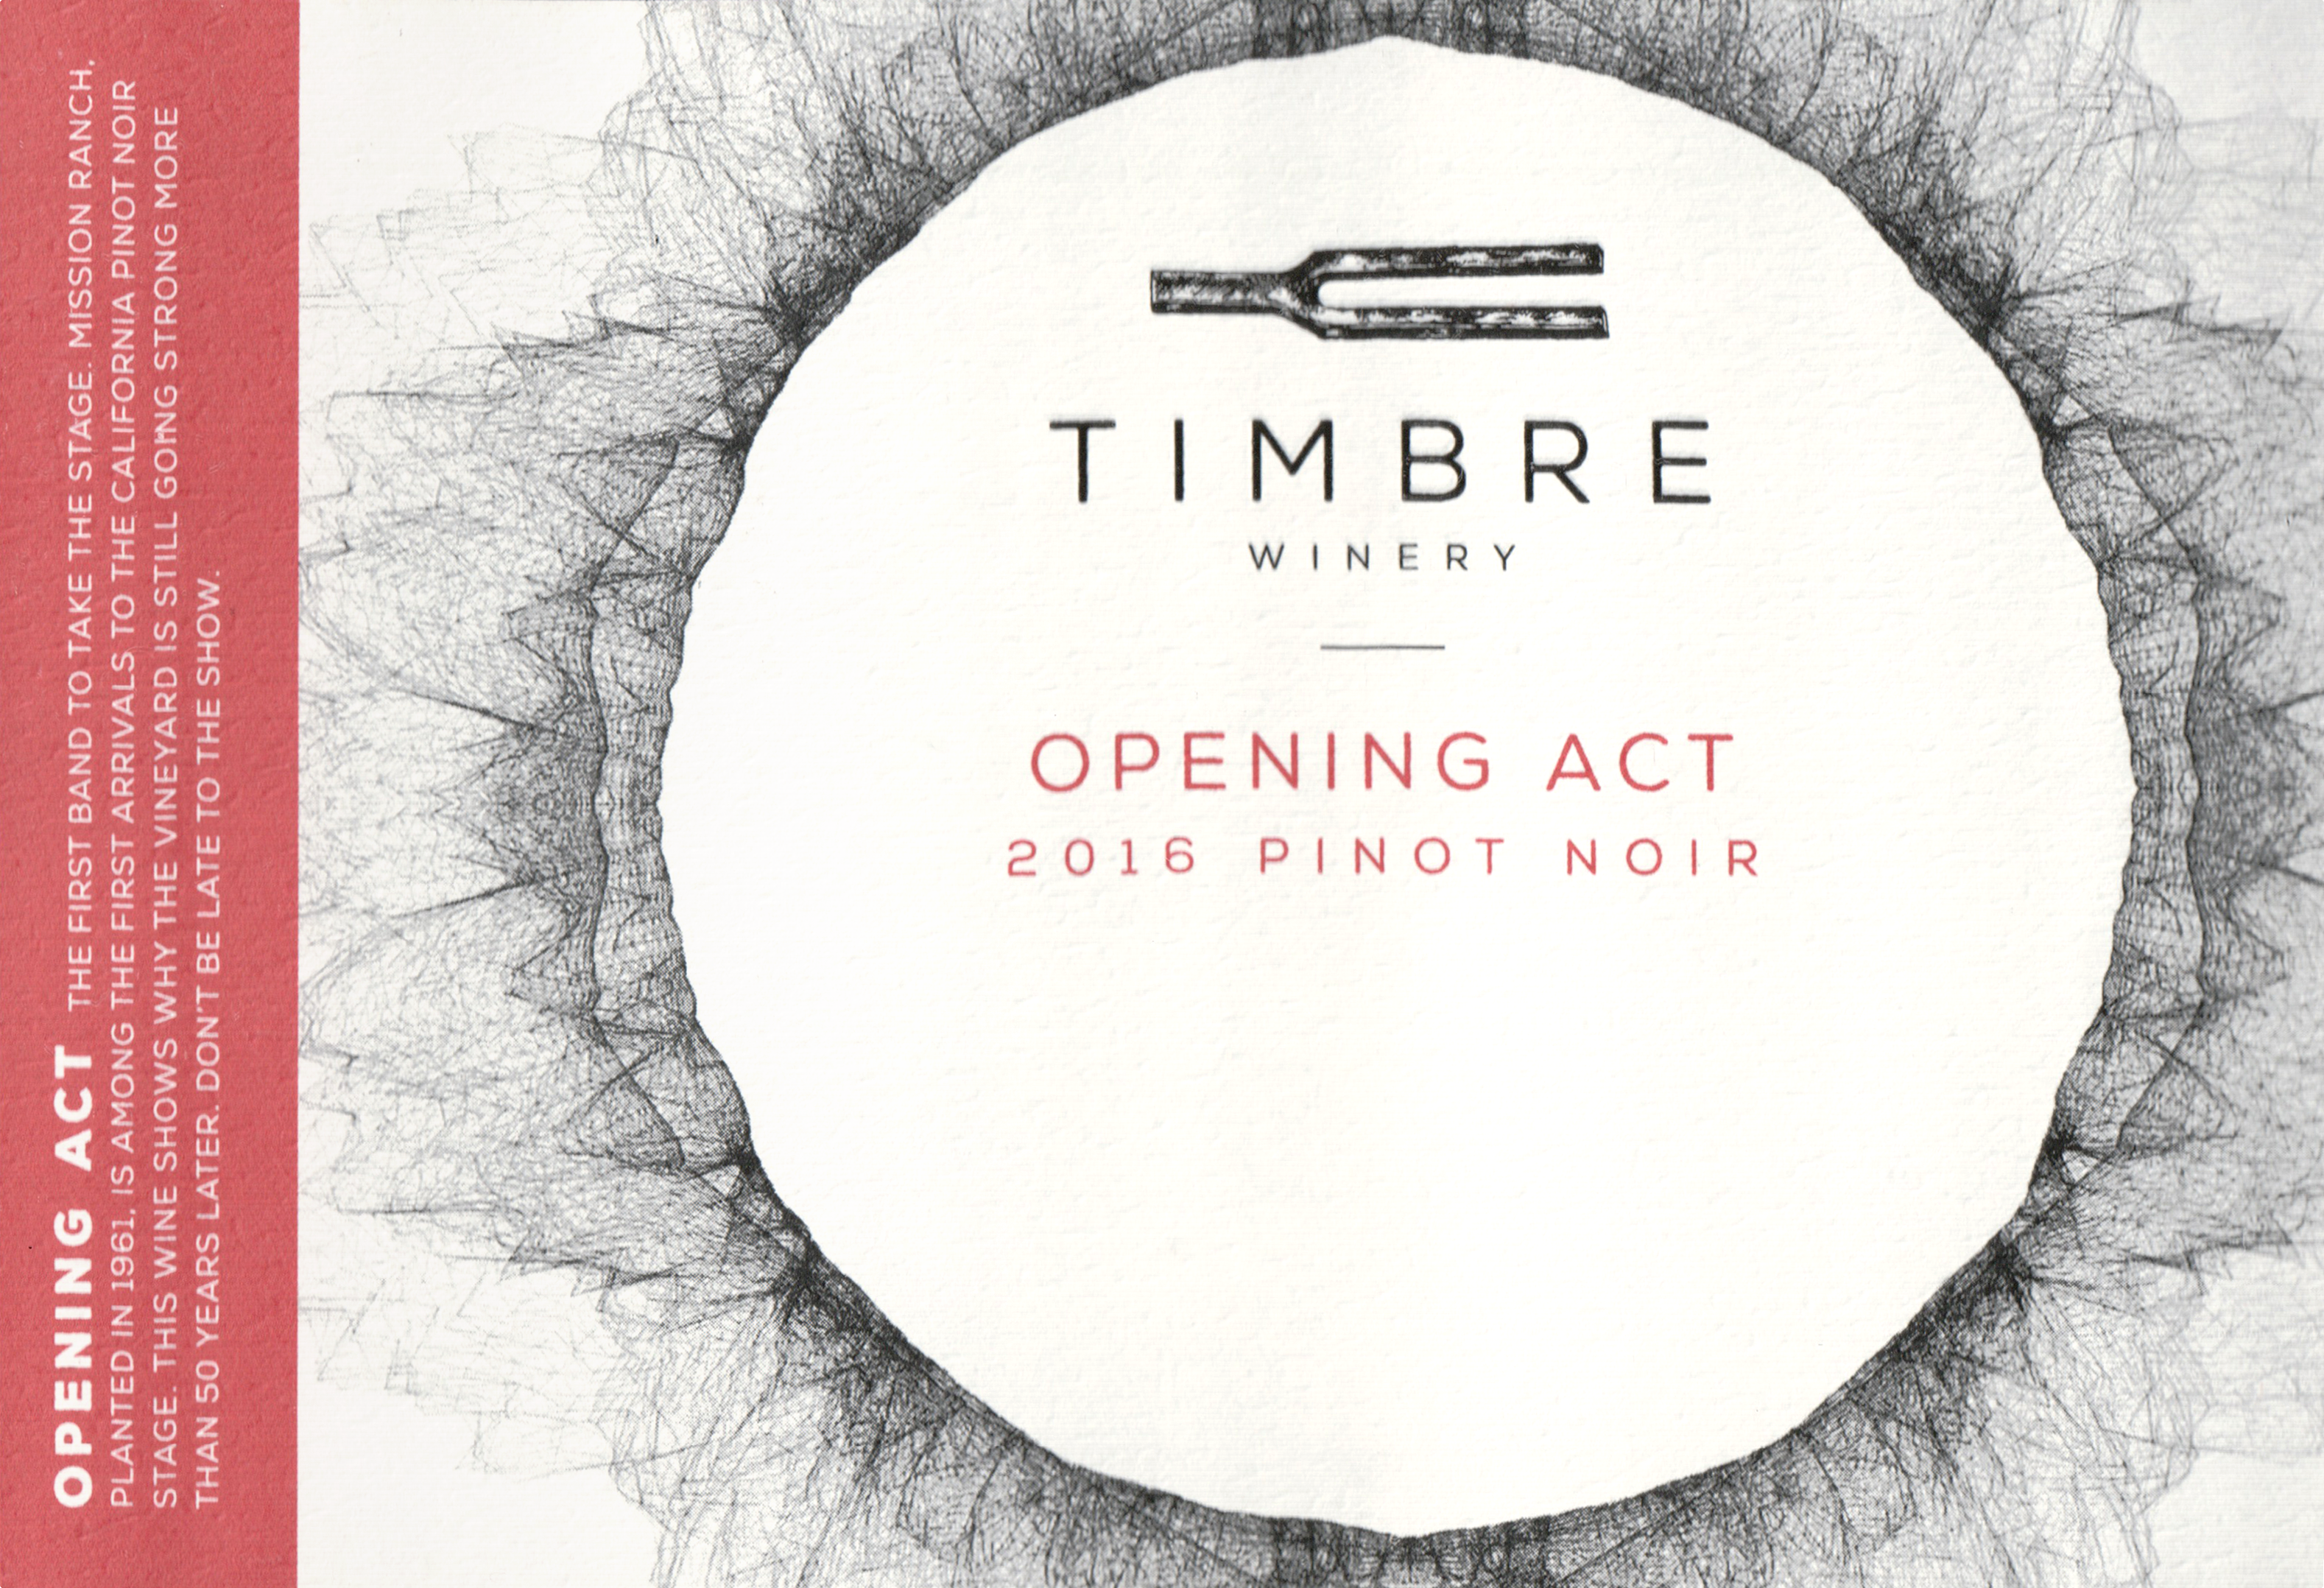 Timbre Pinot Noir Mission Ranch Opening Act 2016